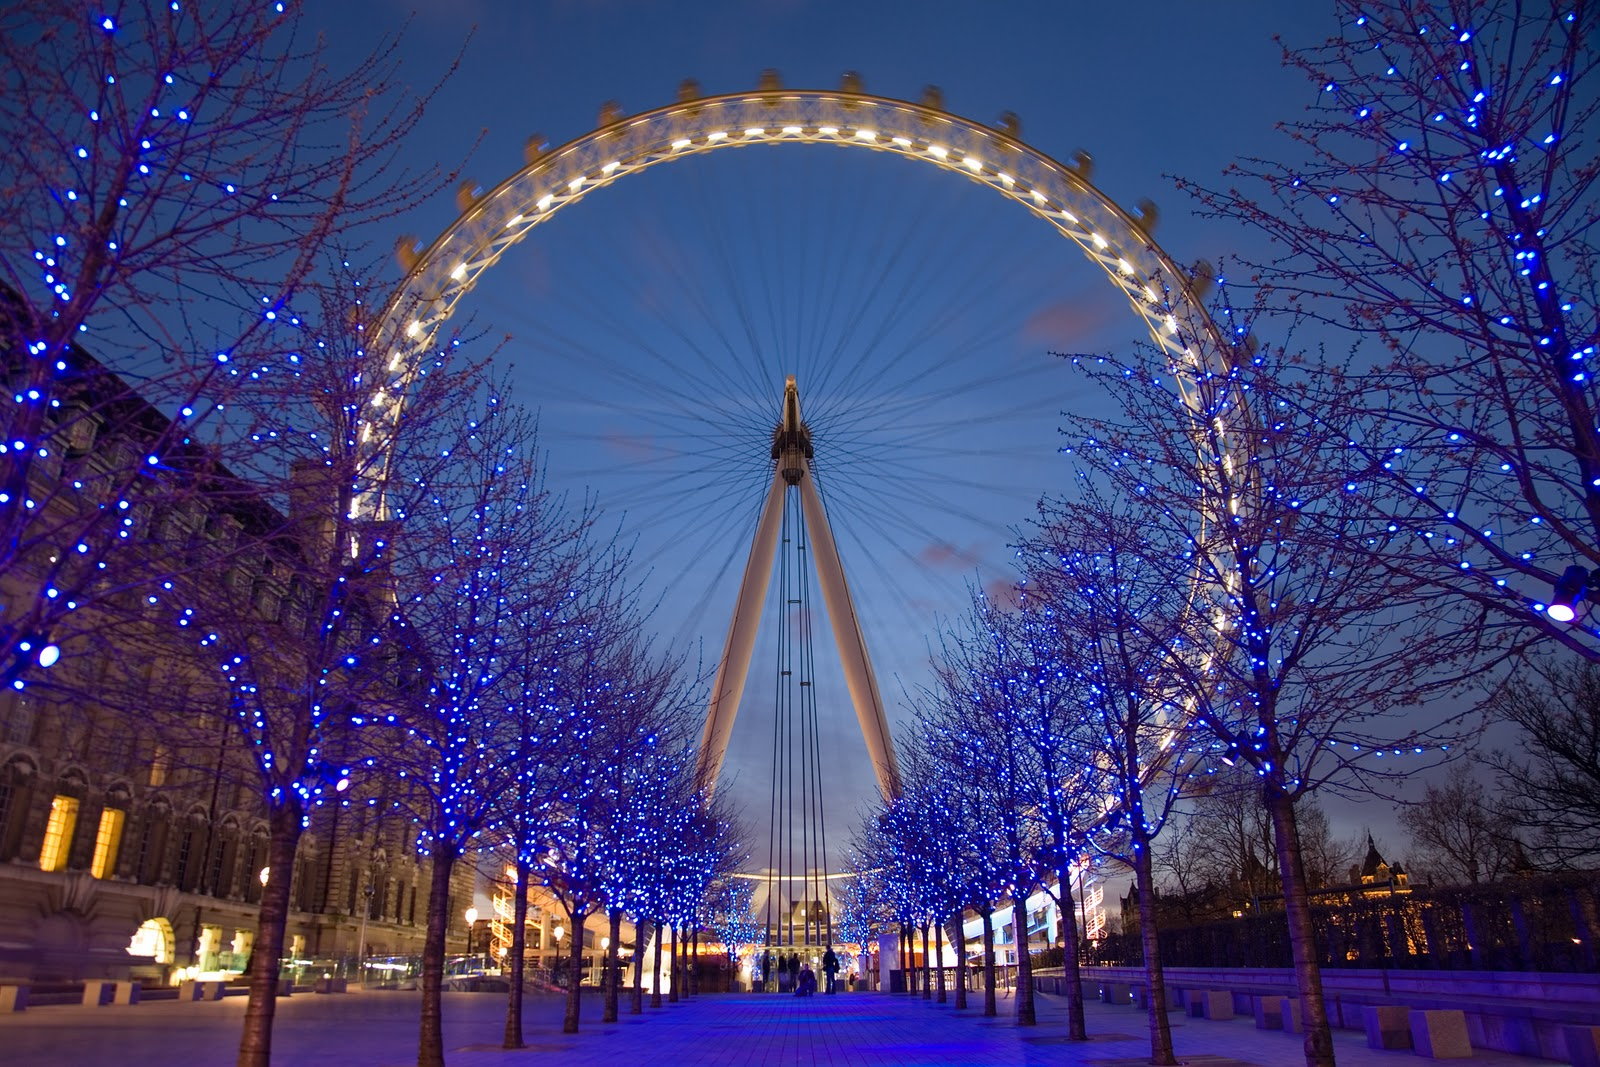 http://4.bp.blogspot.com/-7MWS4h4kwvg/TrDtVQHwfQI/AAAAAAAACgA/2J63y7gYI1w/s1600/Amazing+London+Ferris+Wheel+Wallpapers.jpg